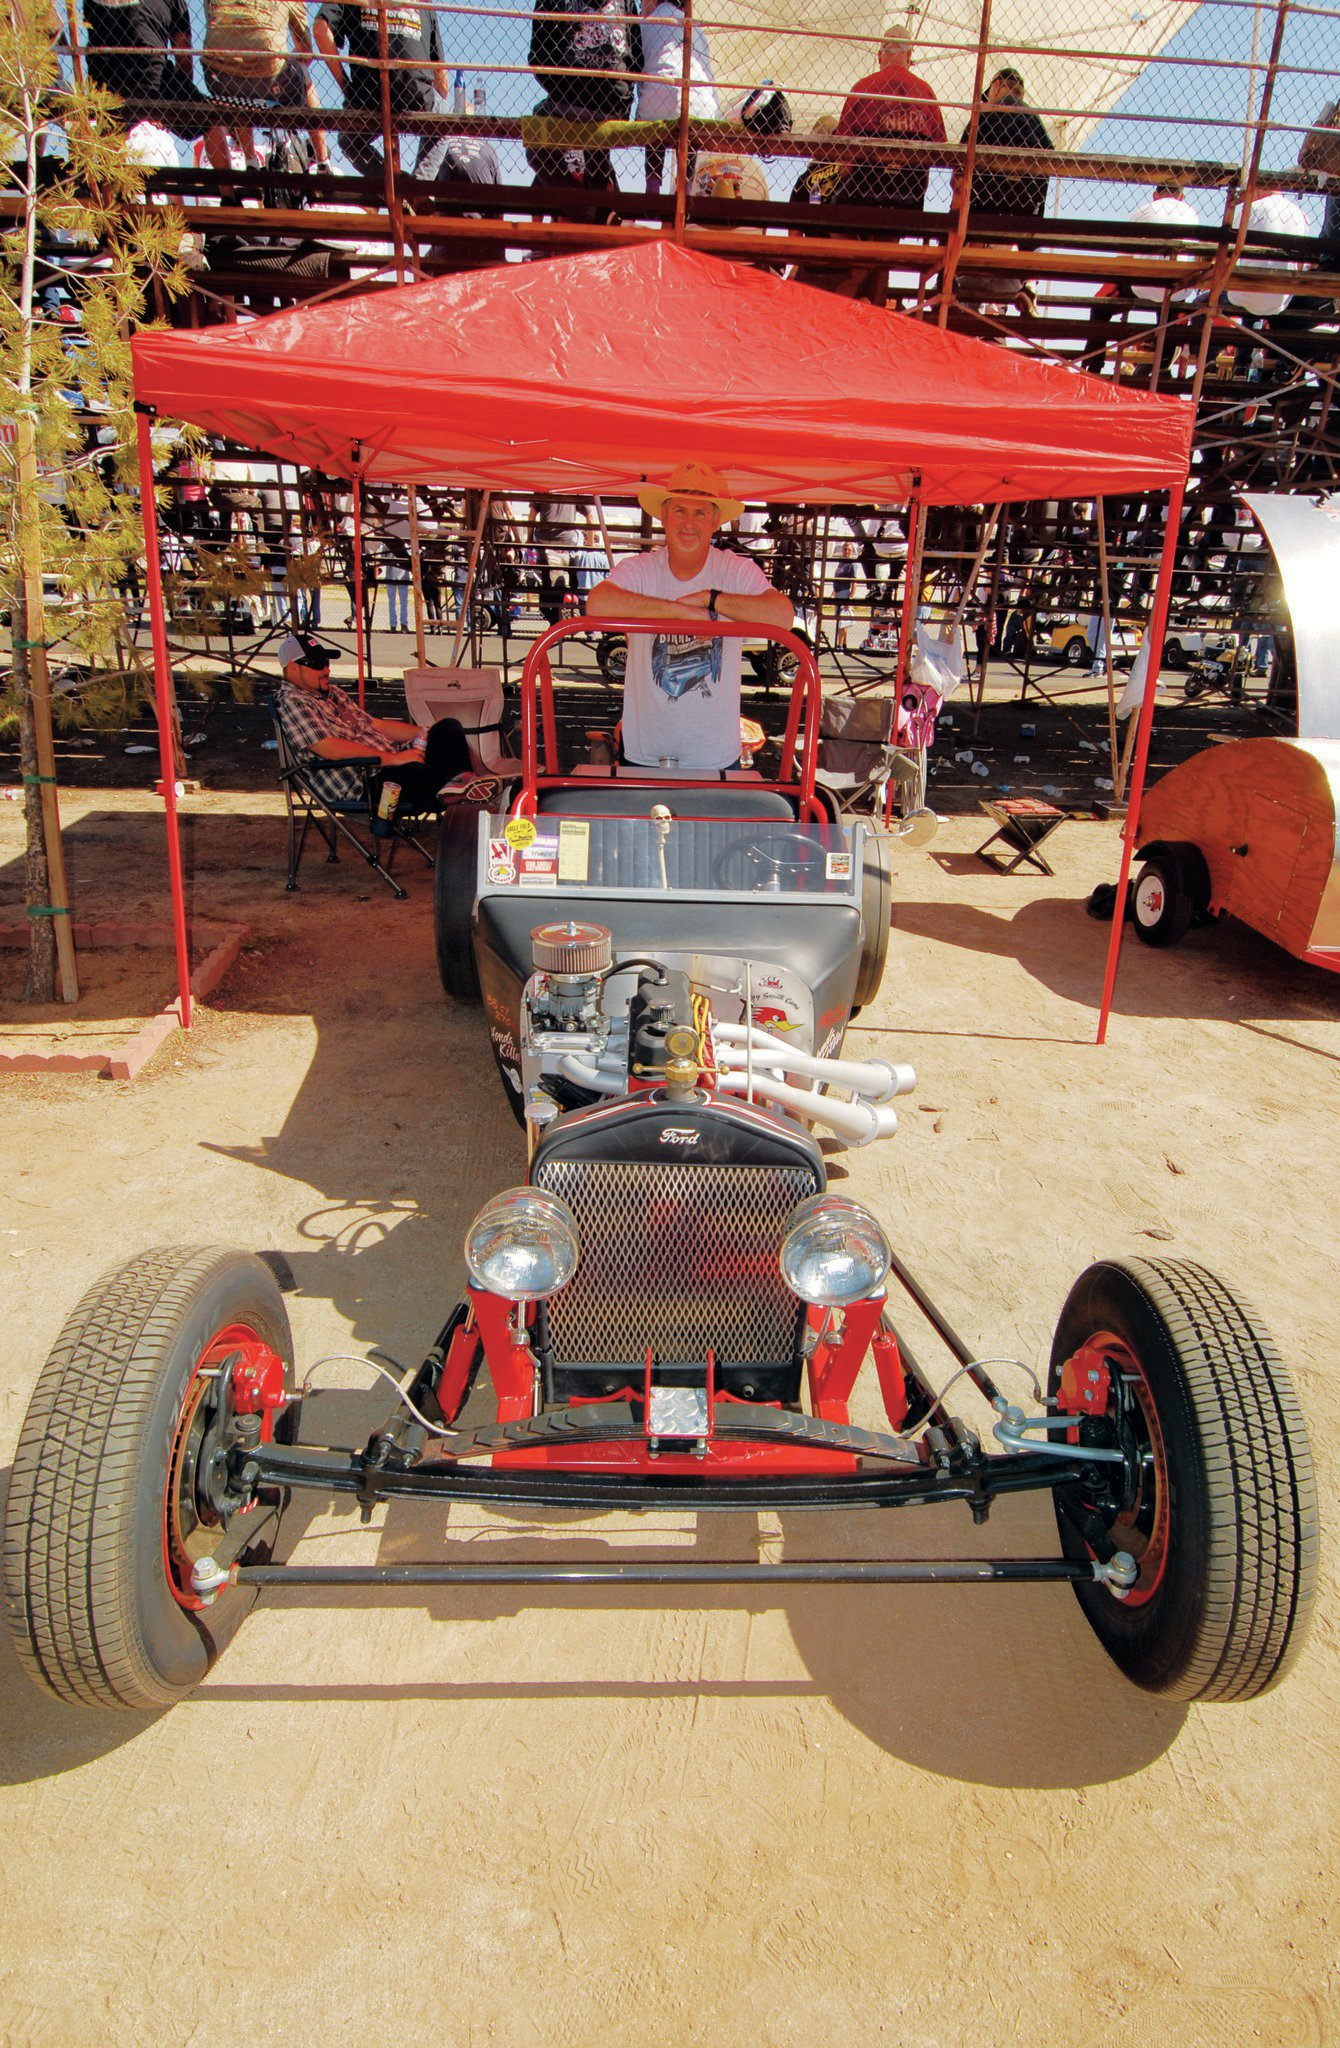 "Neil Ramey's idea of an all-American economy car combines a '23 T with the Pontiac Fiero four-banger and TorqueFlite transmission he plucked as an assembly from a retired mail wagon. His Bakersfield fab shop, Wild One Hot Rods, fabricated the chassis, suspension, front end, headers, and three rotating intake systems that range from this single Rochester 4G to a turbocharged setup. The whole package weighs just 1,280 pounds, Neil insists, and ""handles like a go-kart."""